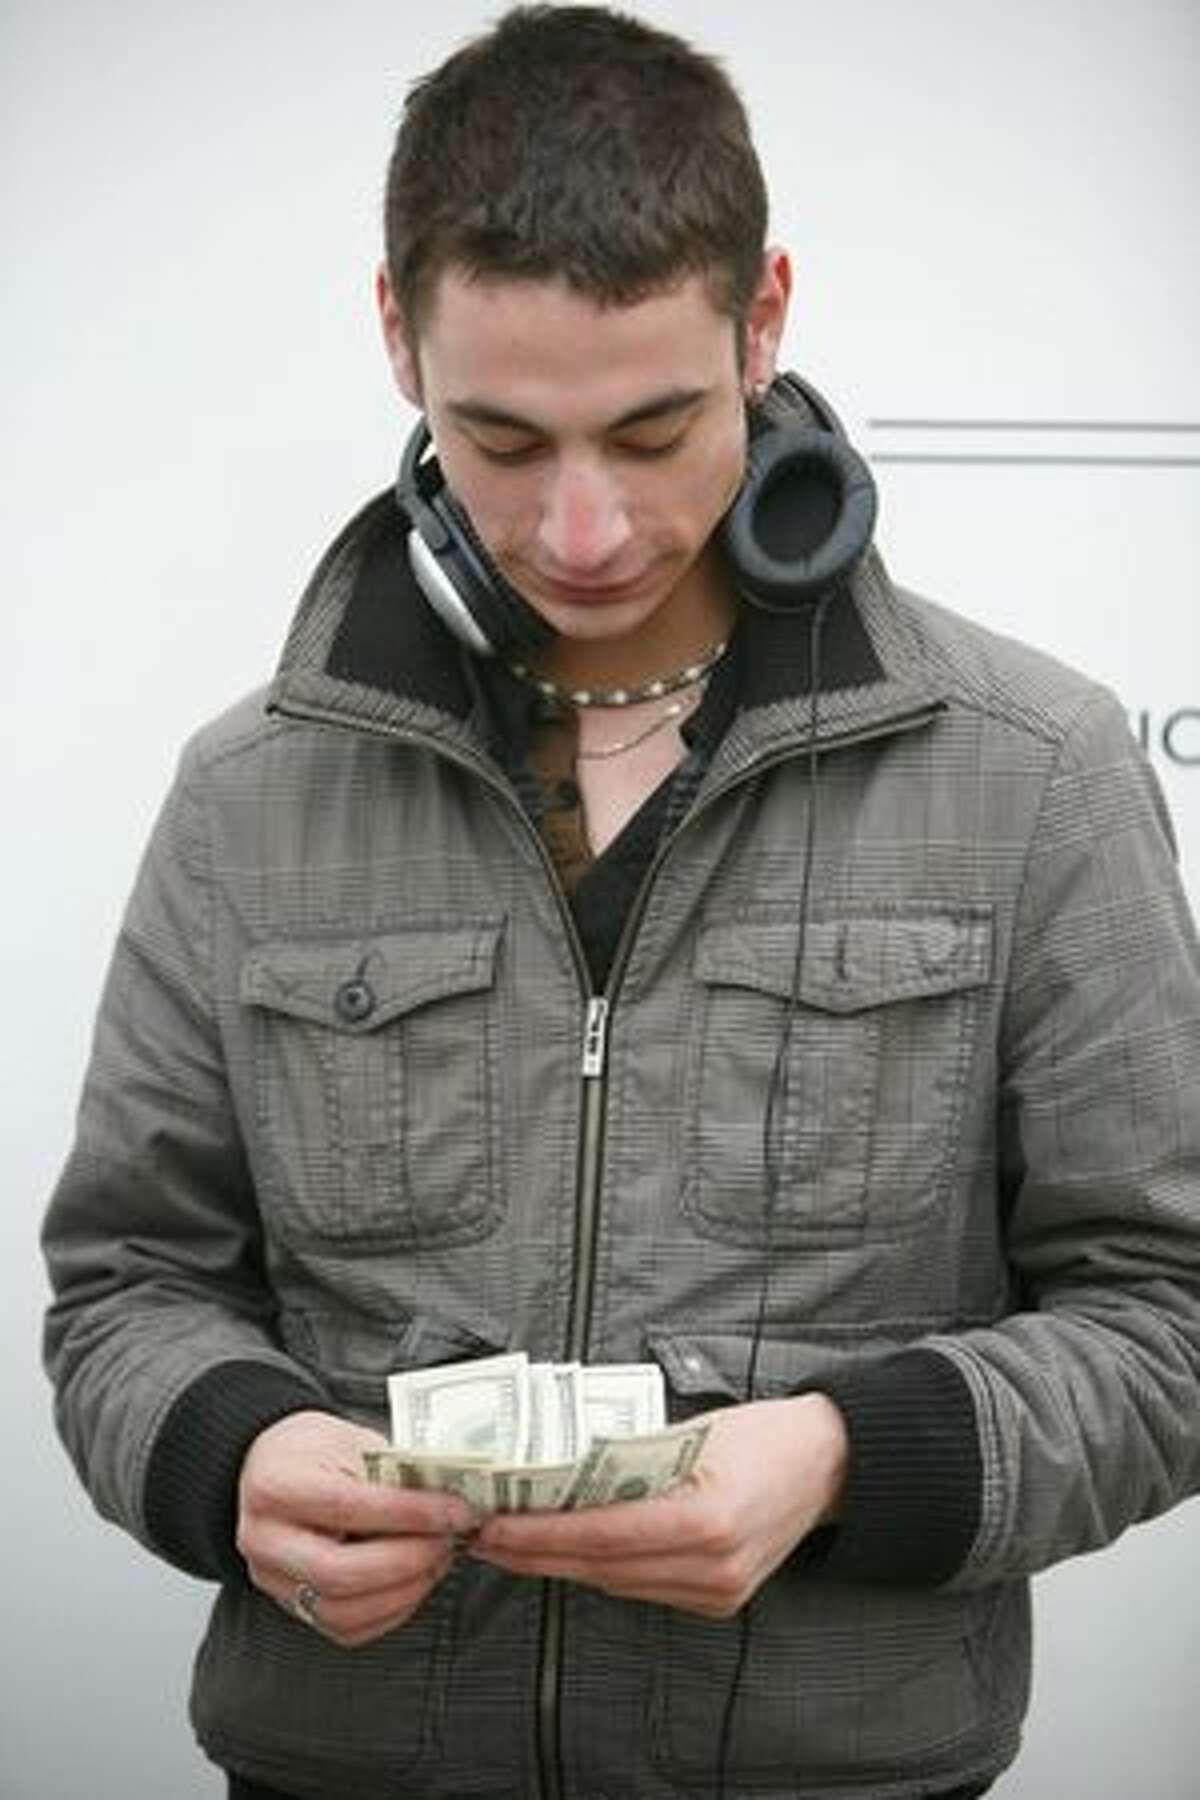 Quentin Laudrain counts his money before making a purchase of Apple's new iPad during the release of the device at the University Village Apple Store in Seattle.